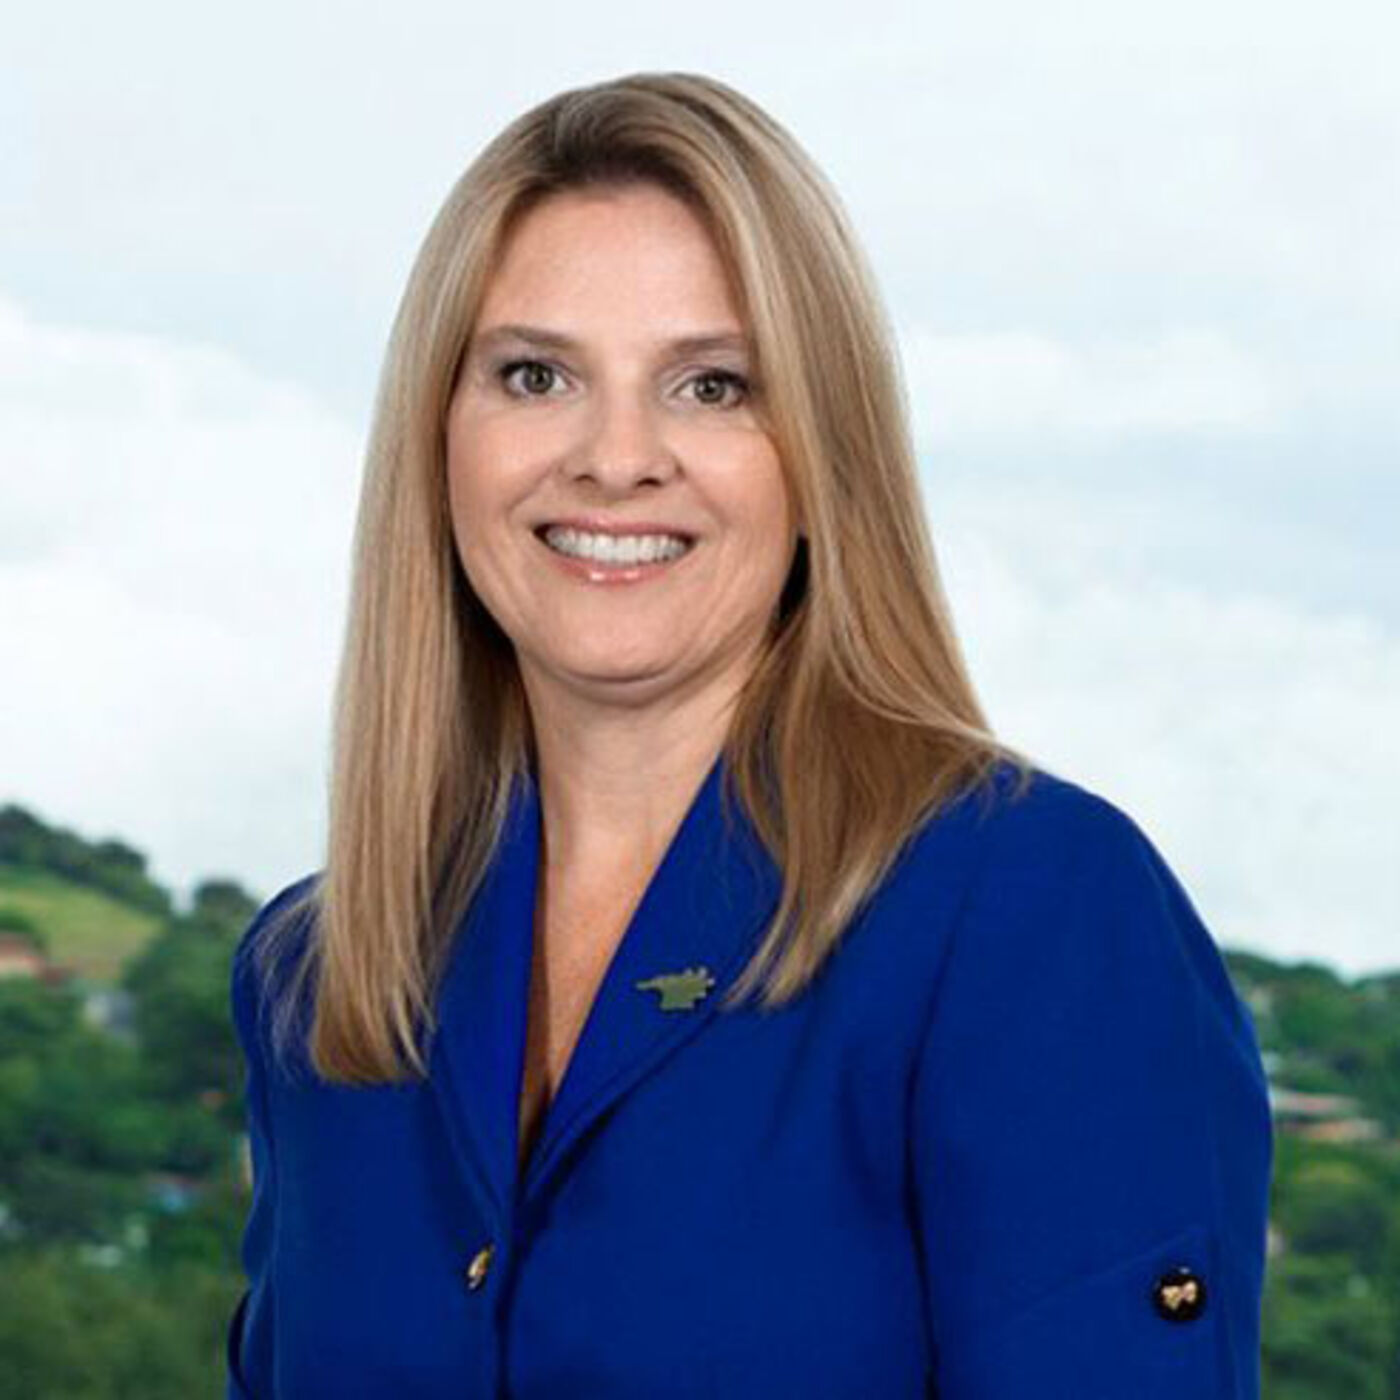 #02: Pilar Madrigal Director Of Investment Advisory At Costa Rican Investment Promotion Agency (CINDE)